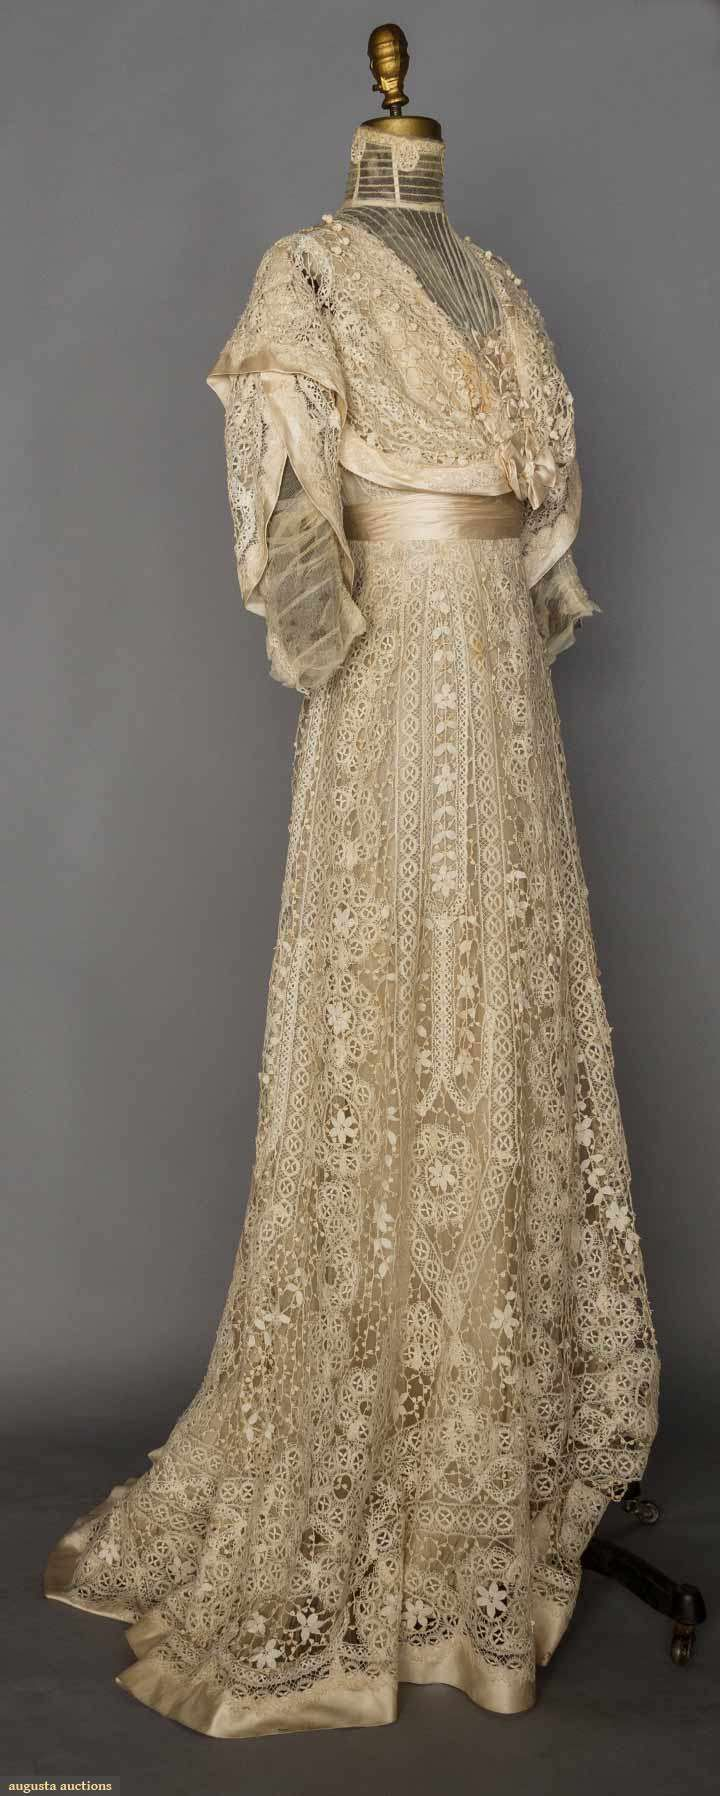 BOBBIN LACE TEA GOWN, c. 1906. Ivory torchon lace in vertical rows, empire W, tulle neck insert & under-sleeves, trained skirt. Front sideway